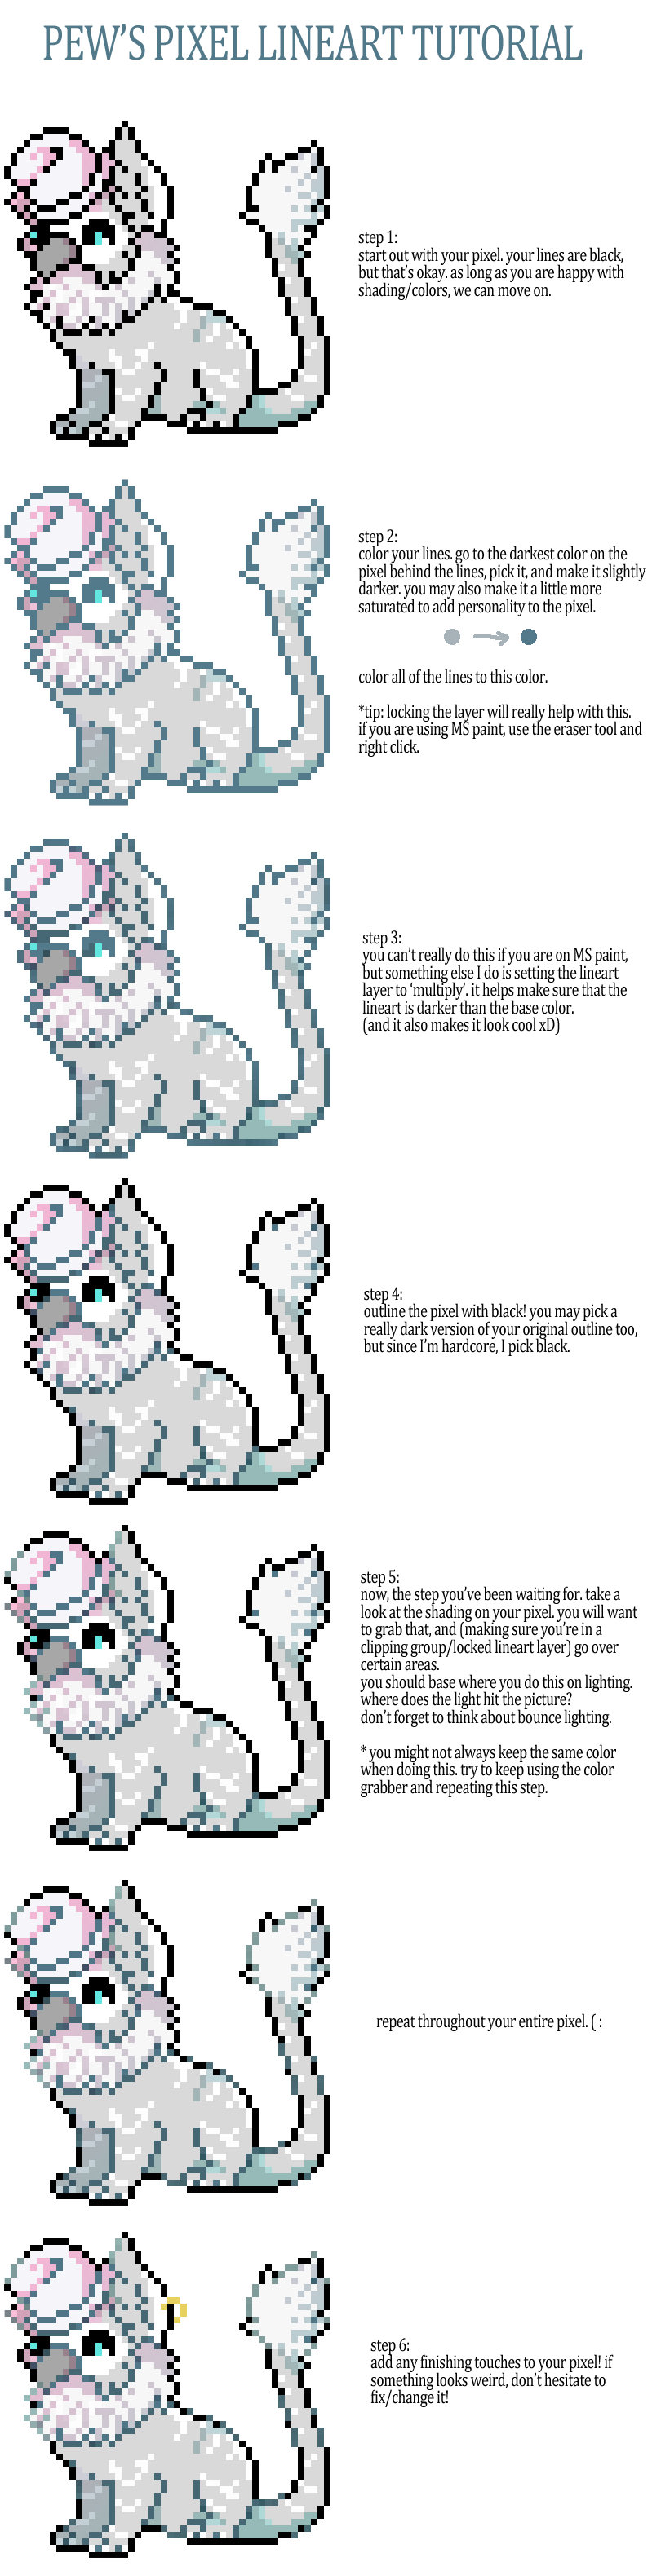 Pixel Lineart Tutorial by pew